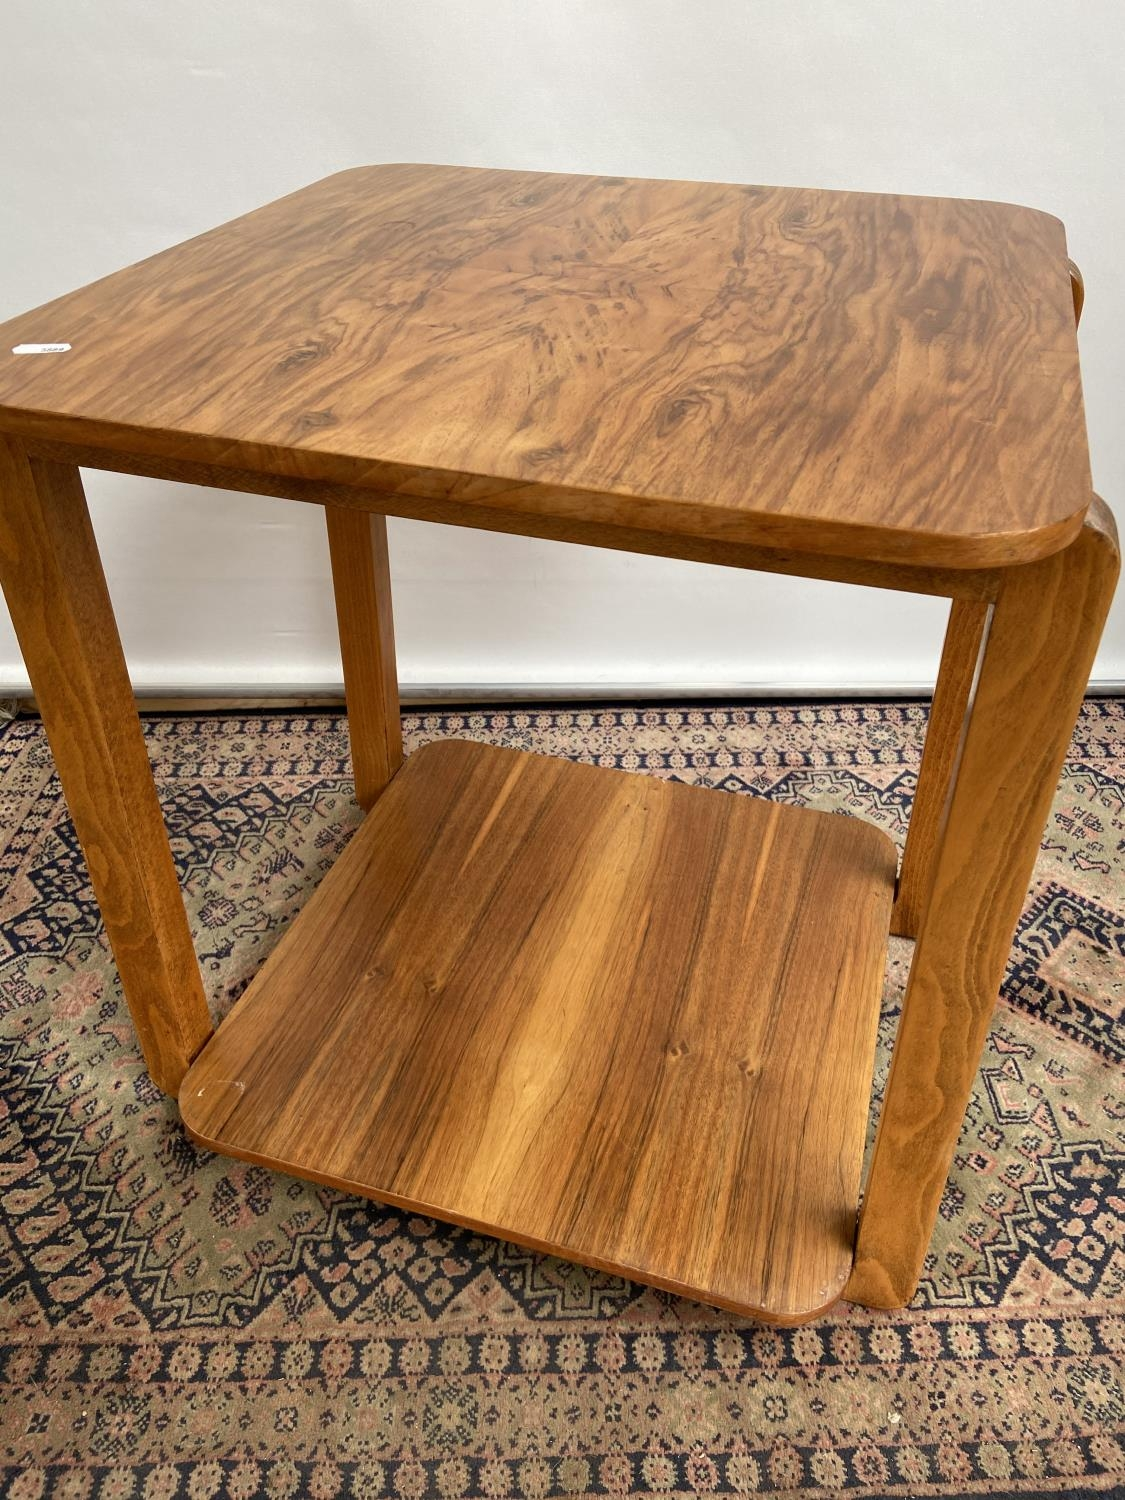 A stylish mid century two tier table [60x50x50cm] - Image 3 of 4